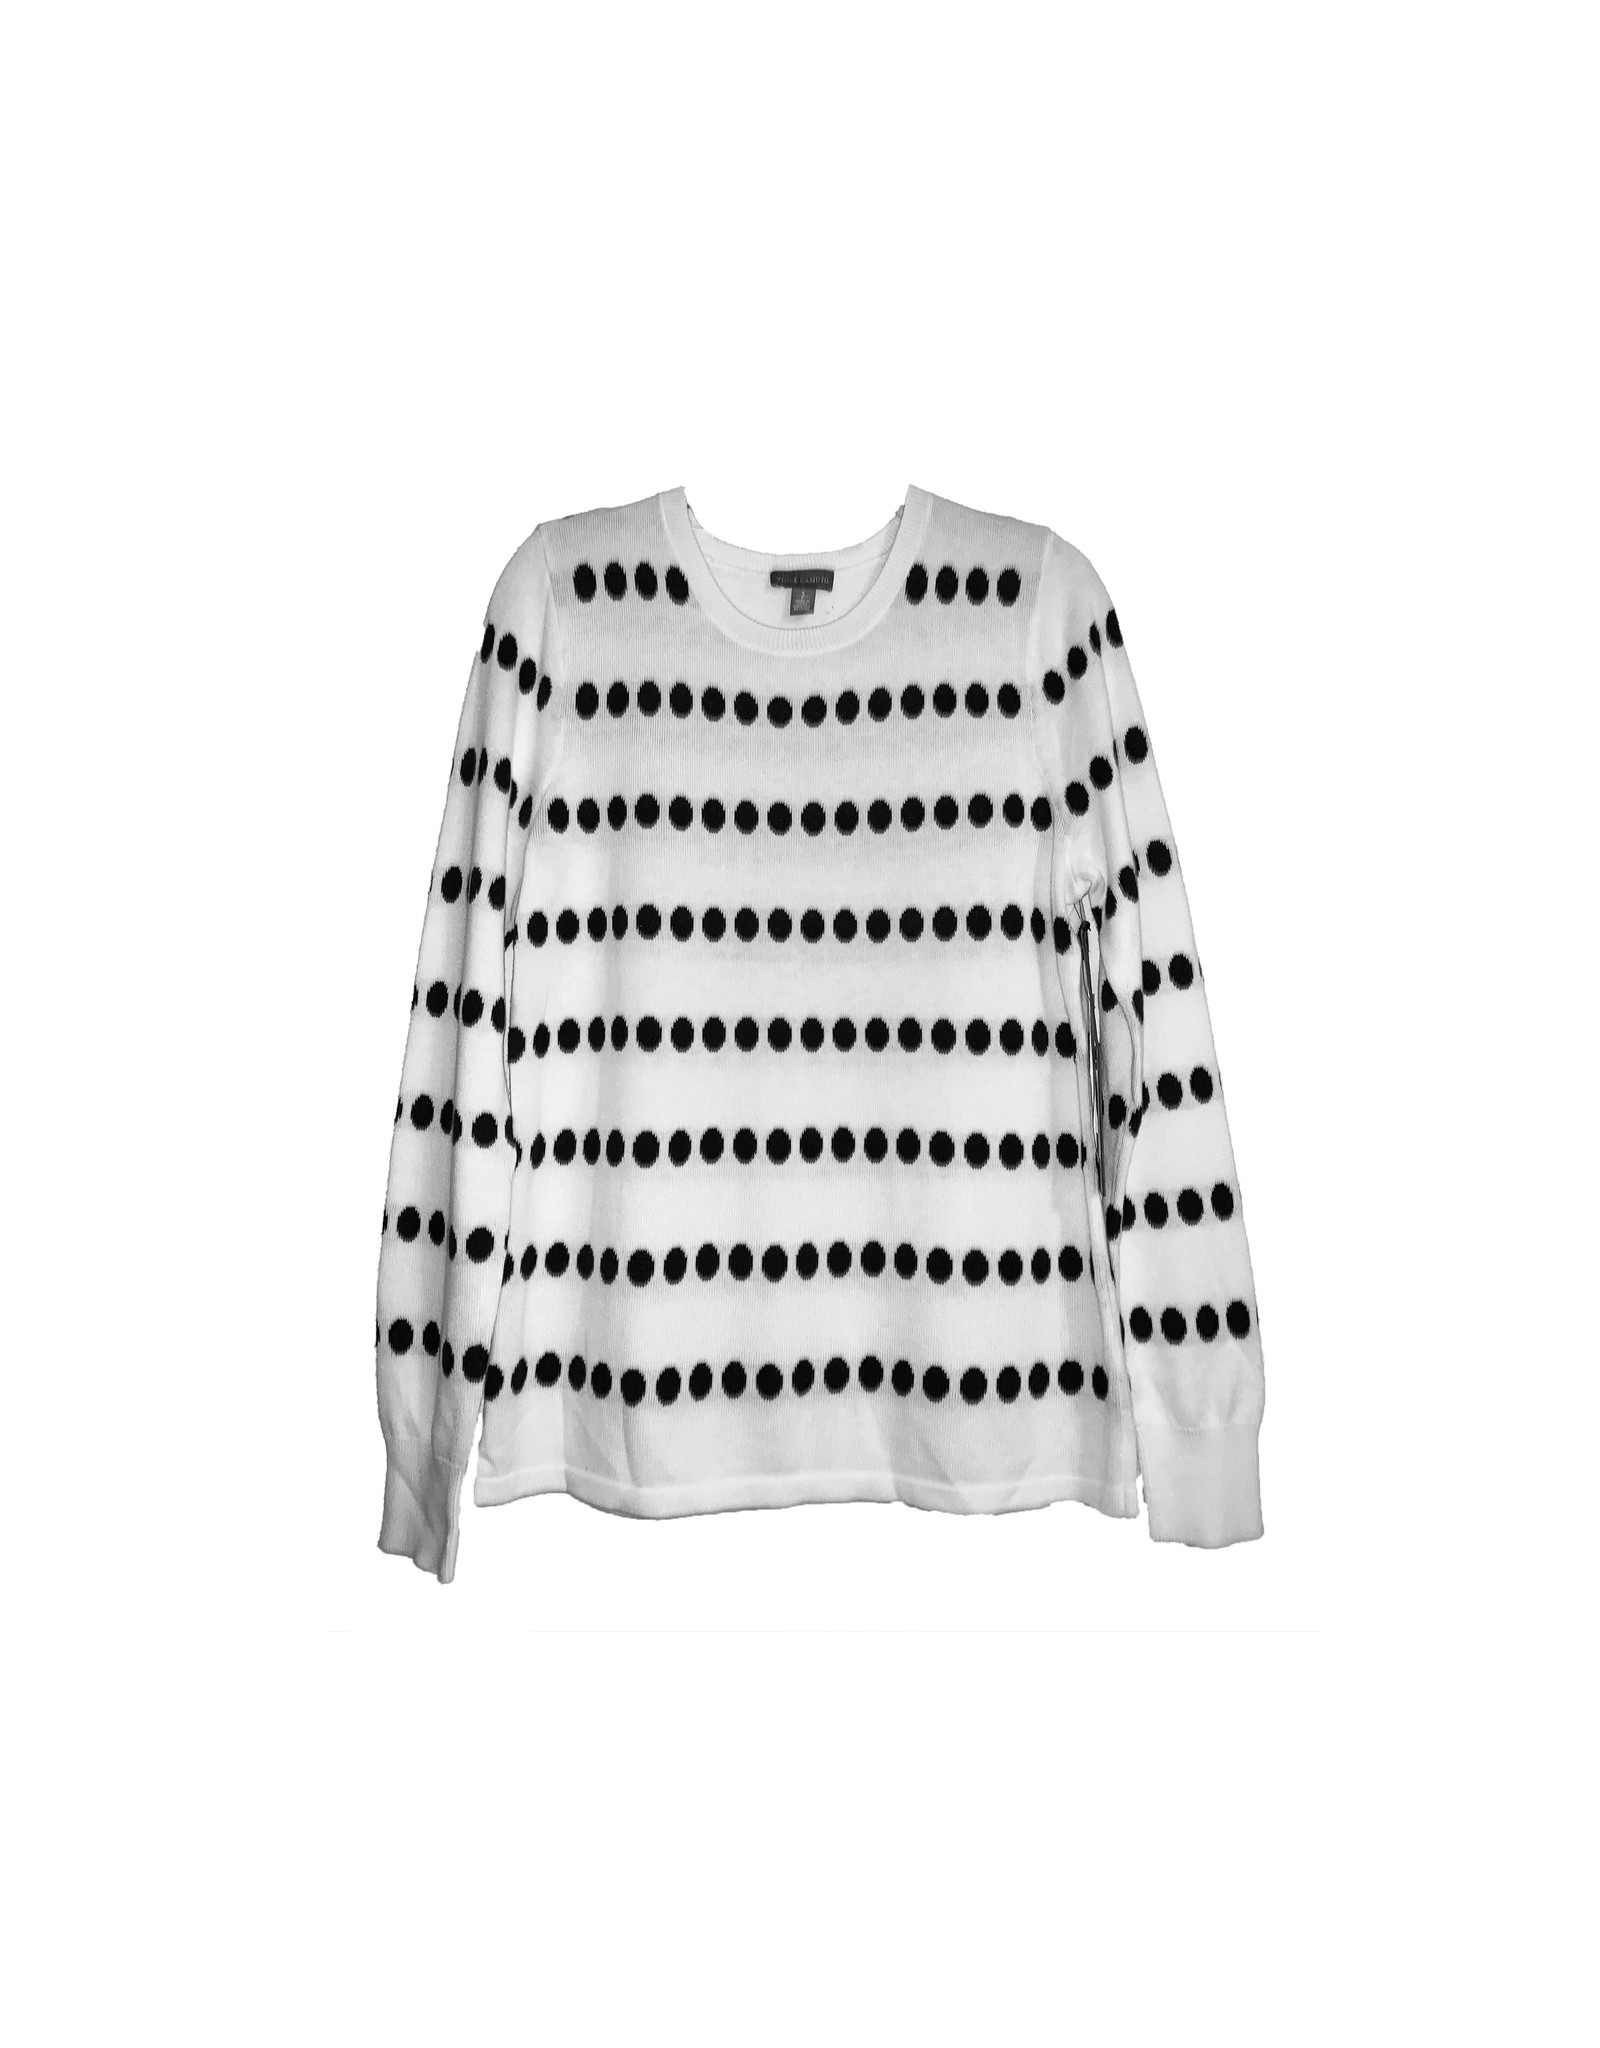 Vince Camuto Vince Camuto Jacquard-Dot Sweater